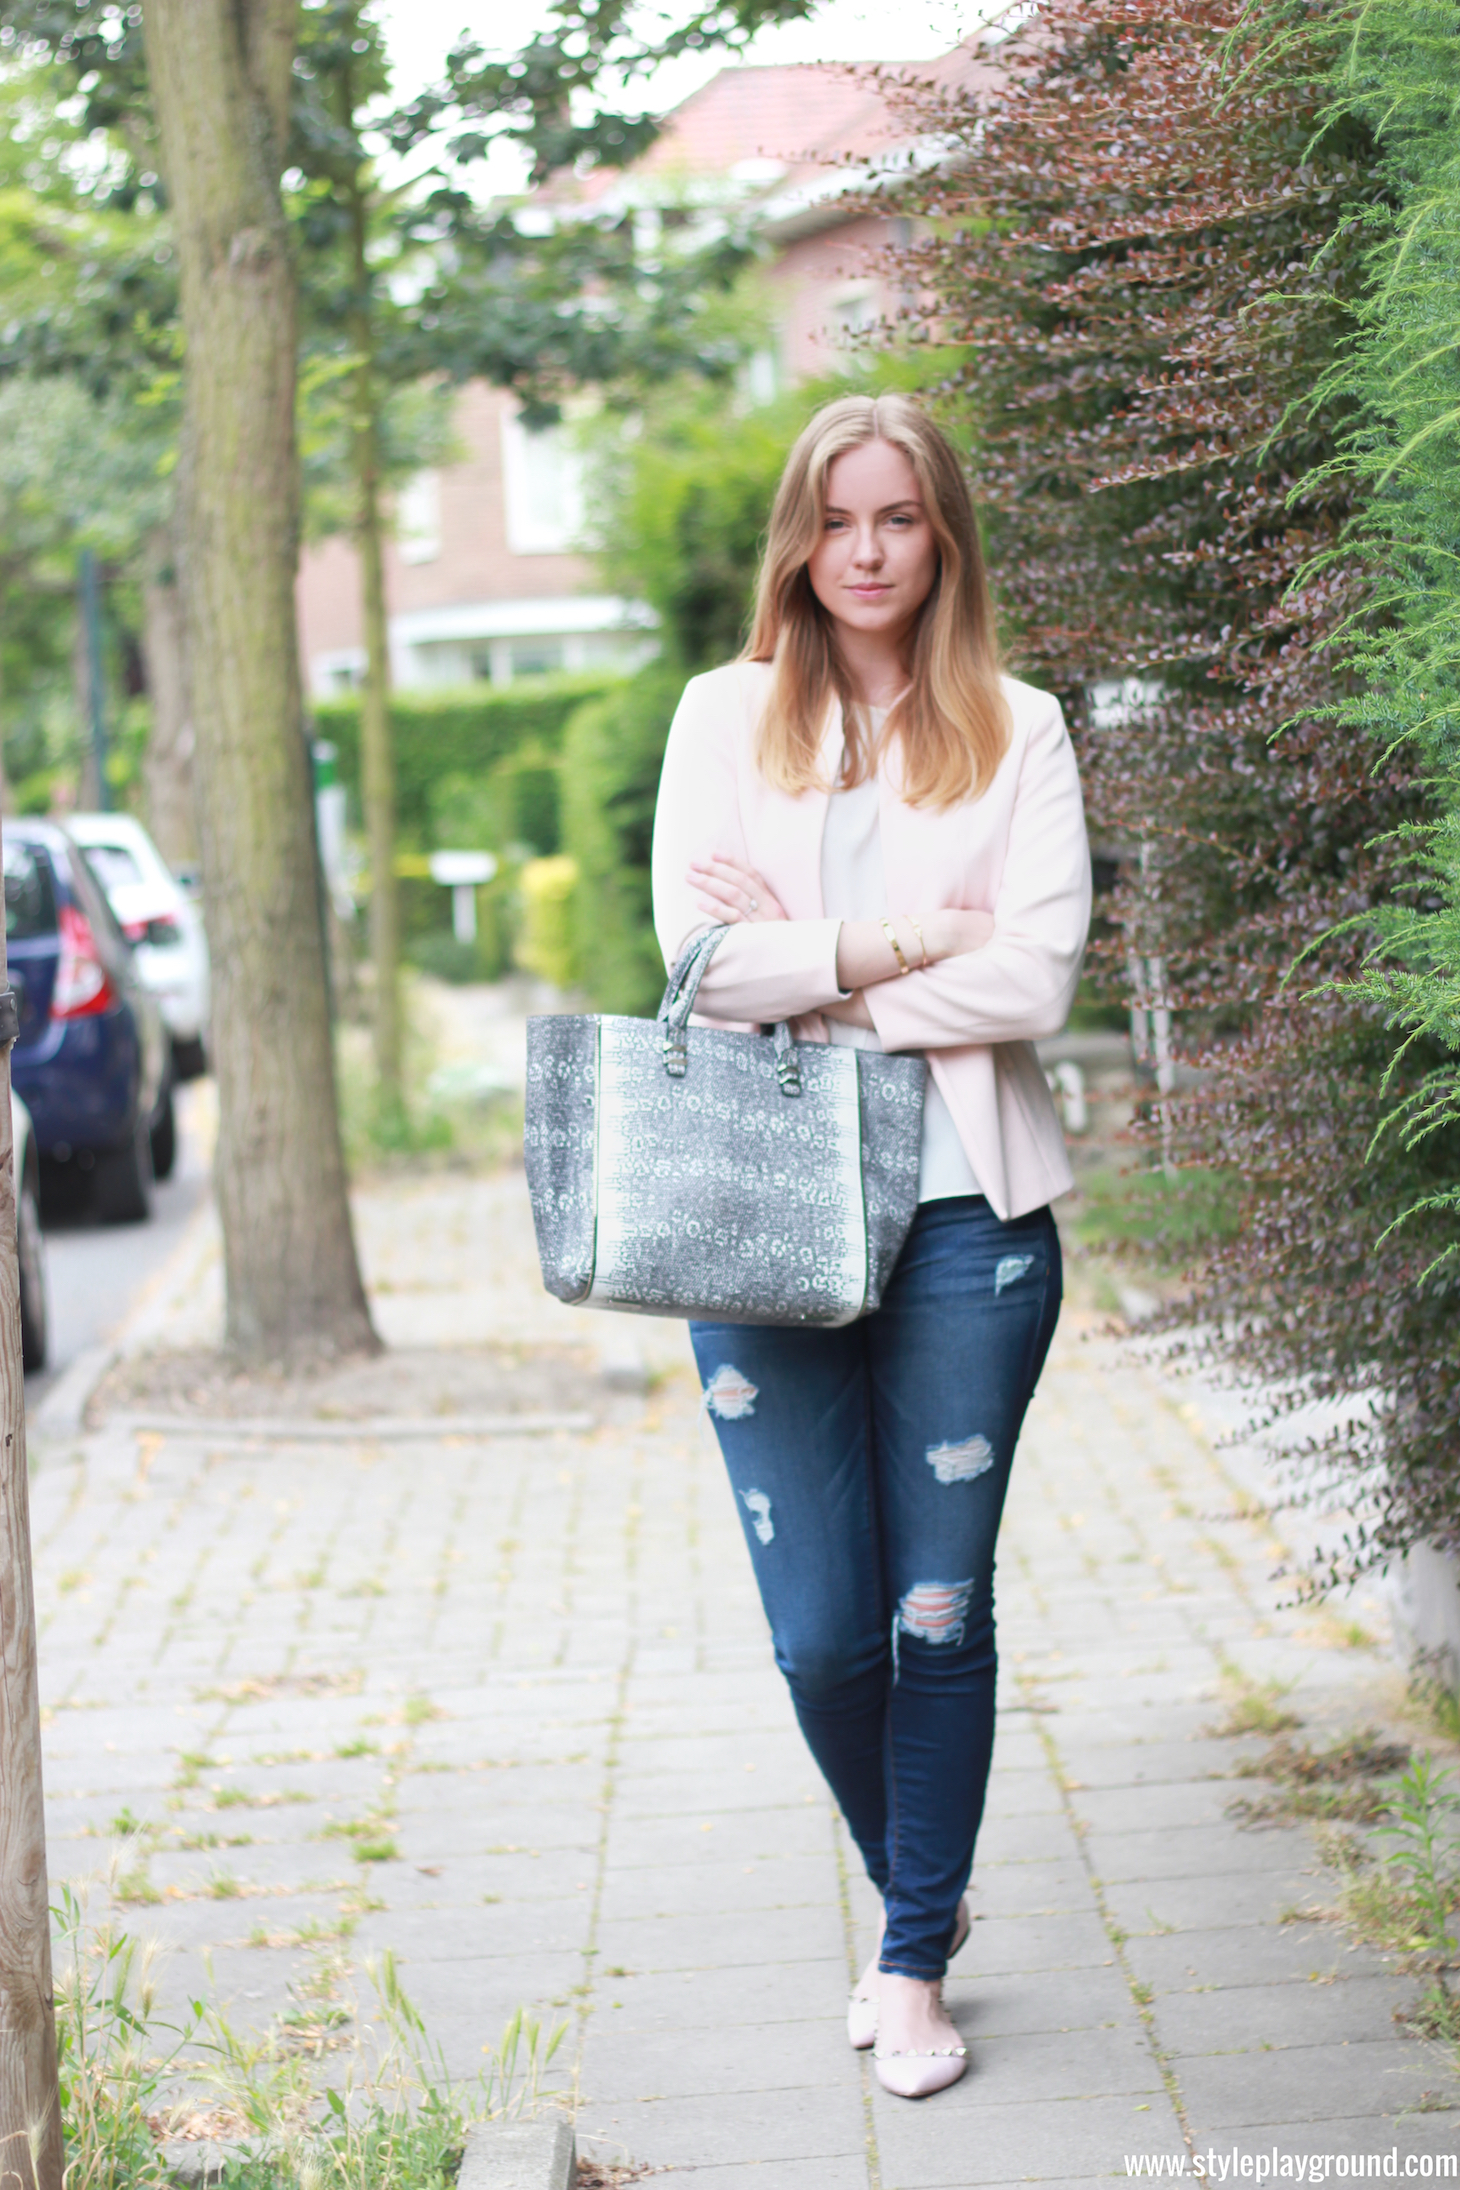 Axelle Blanpain from Style playground is wearing American Eagle ripped jeans, H&M blazer, Zara top, Rebecca Minkoff mini Perry tote & Valentino rockstud flats